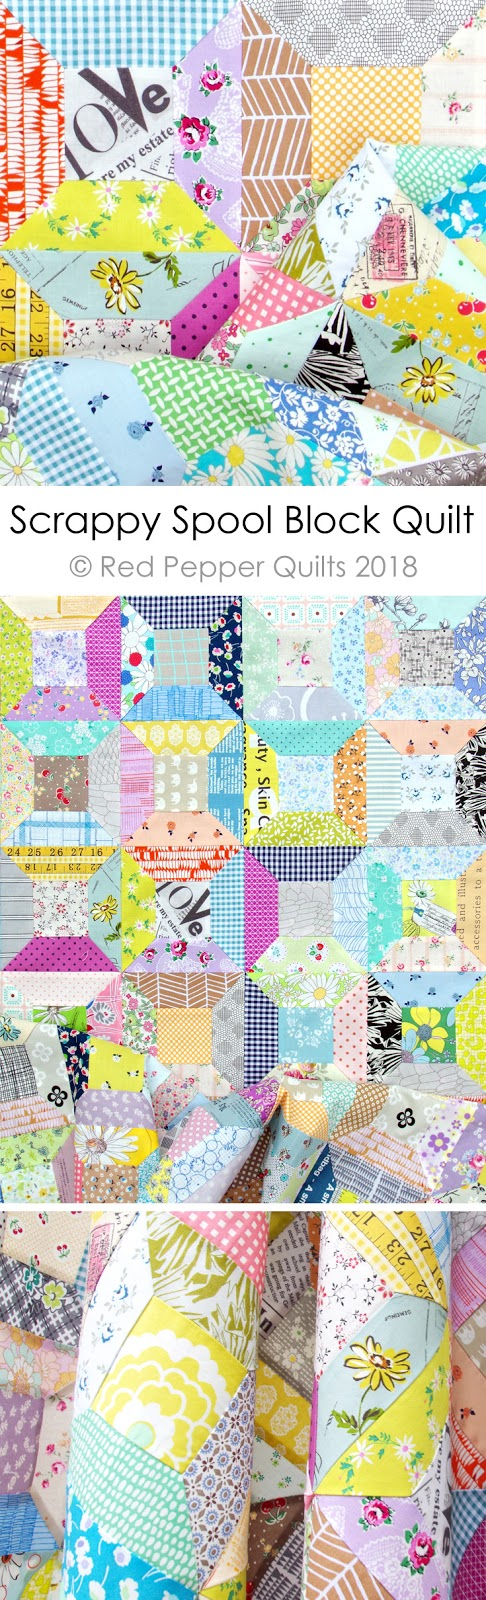 Scrappy Spool Block Quilt - with link to Spool Block with Inset Seams Tutorial | © Red Pepper Quilts 2018 #patchworkquilt #spoolblockquilt #quiltblock #sewingtutorial #redpepperquilts #scrapquilt